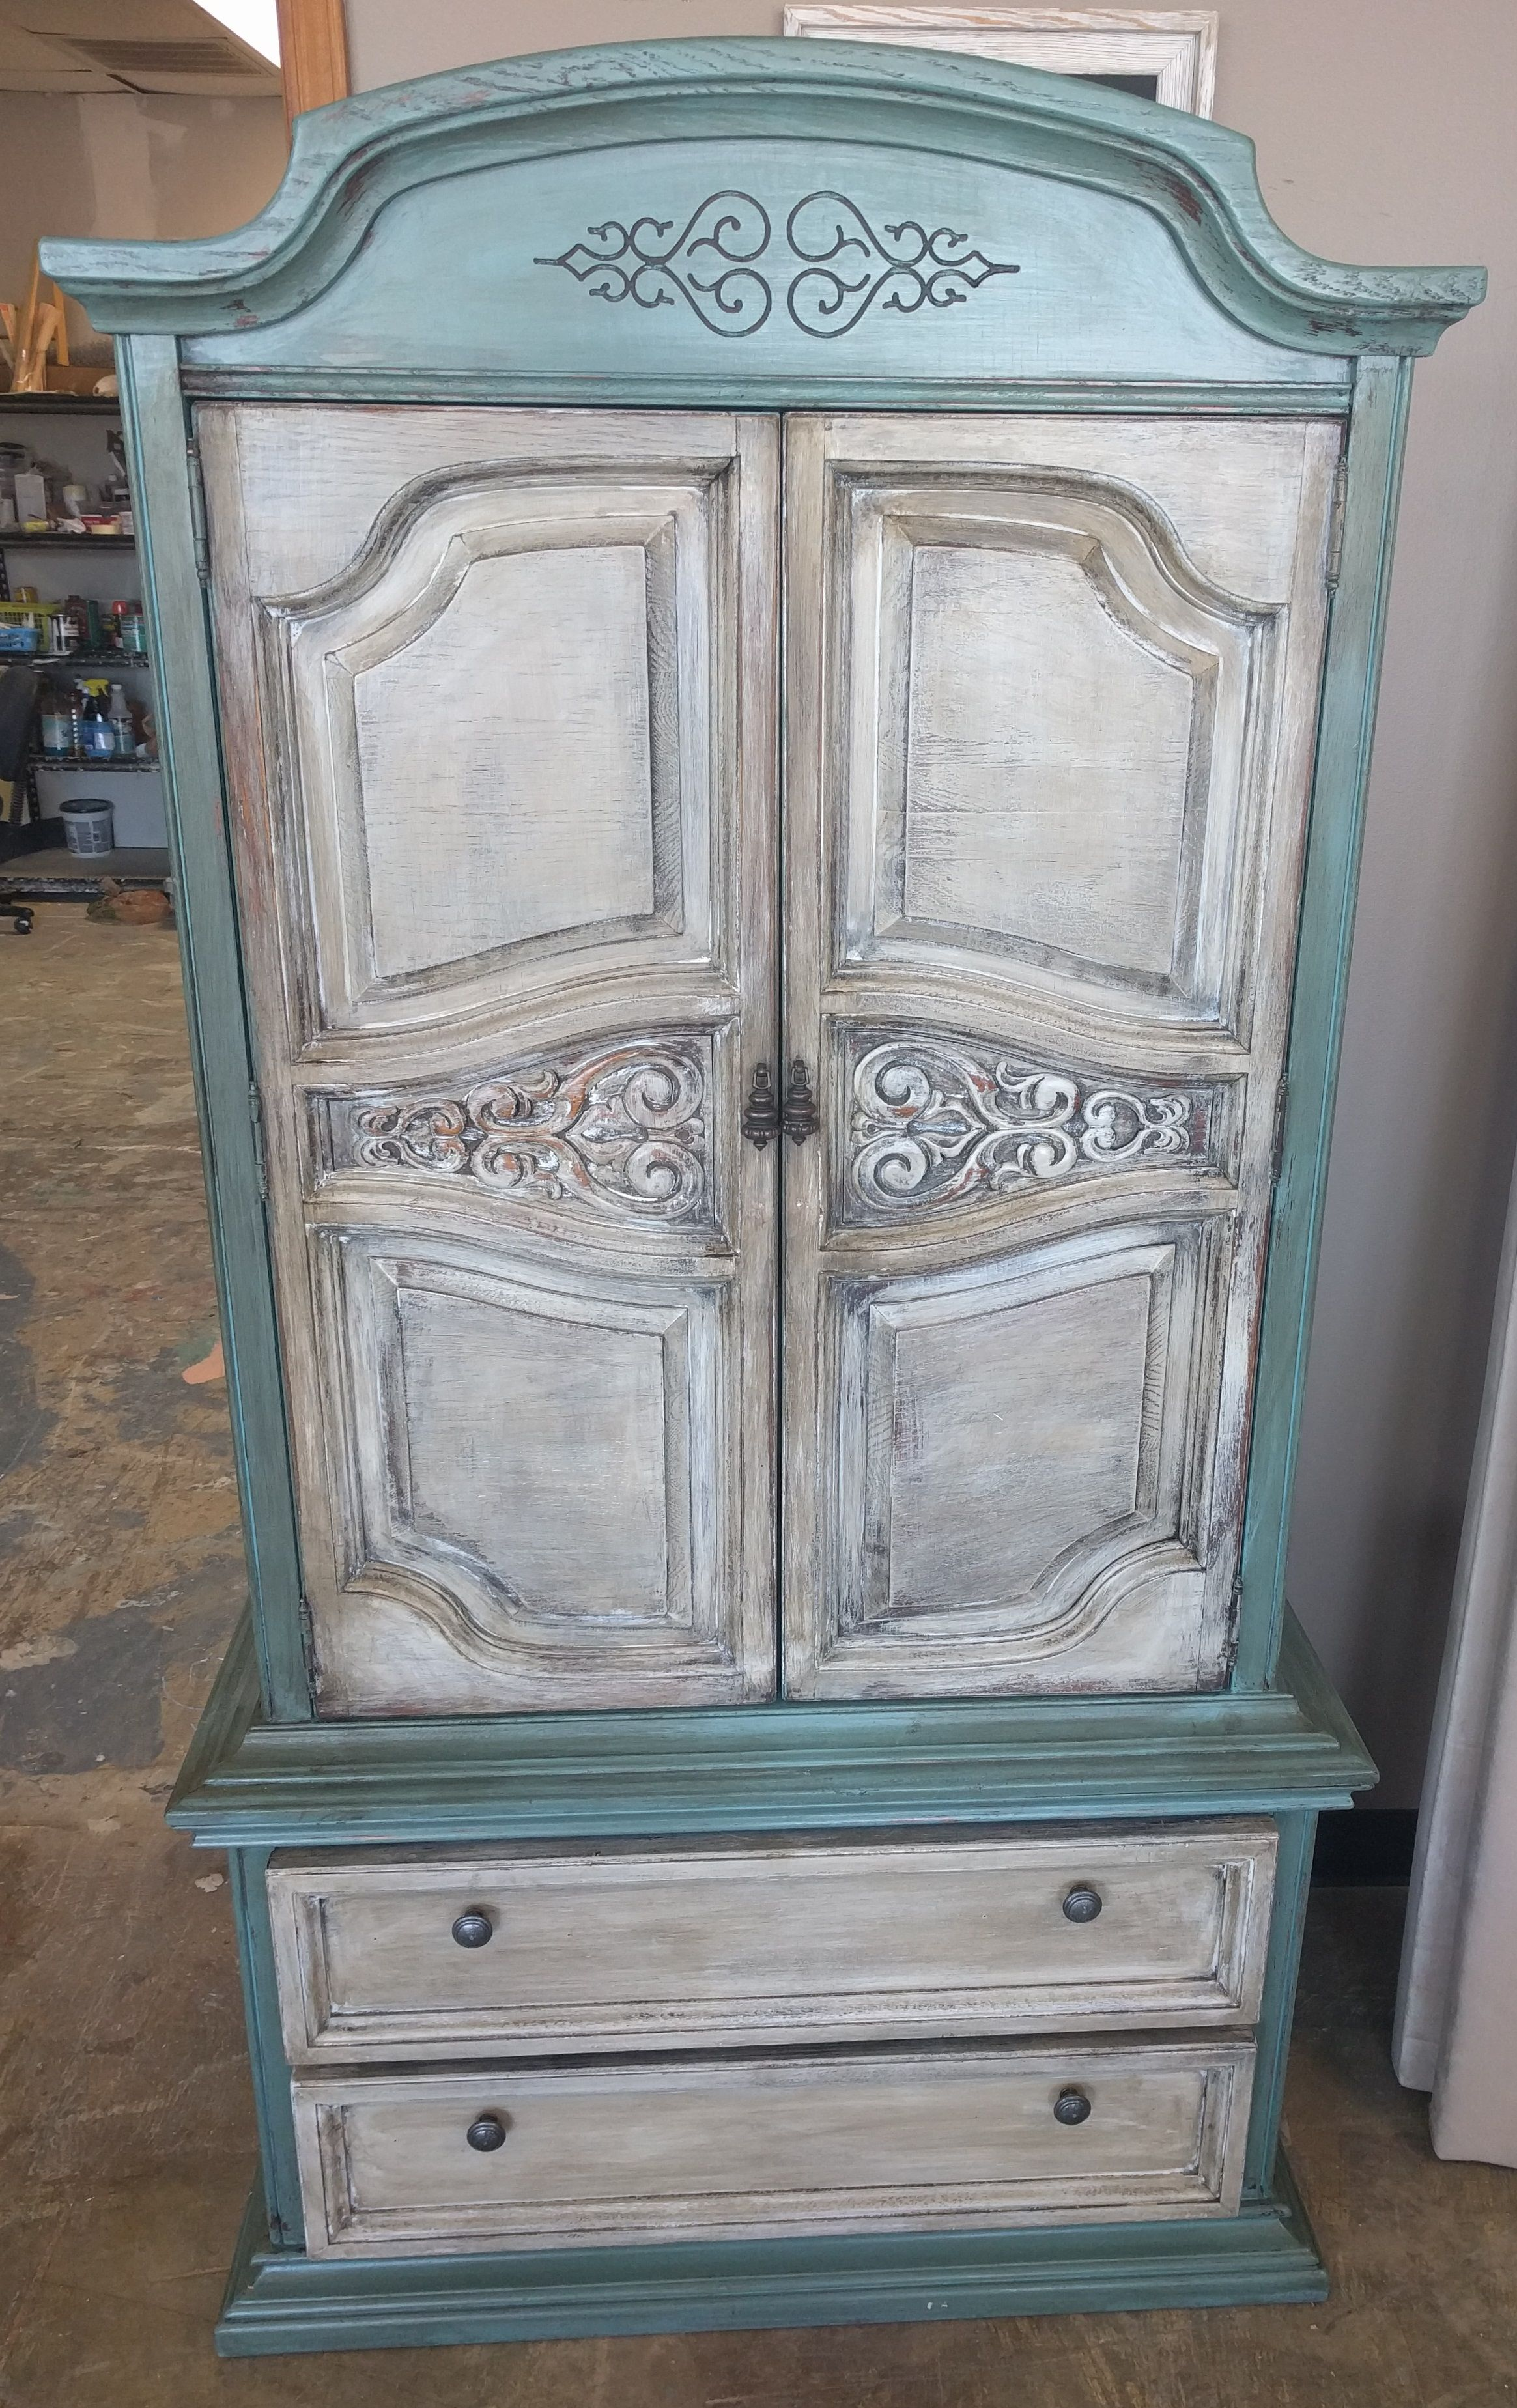 These Wardrobe Armoires Are So Handy When You Don T Have A Lot Of Space In The Bedroom What Do You Thin Shabby Chic Painting Shabby Chic Shabby Chic Furniture